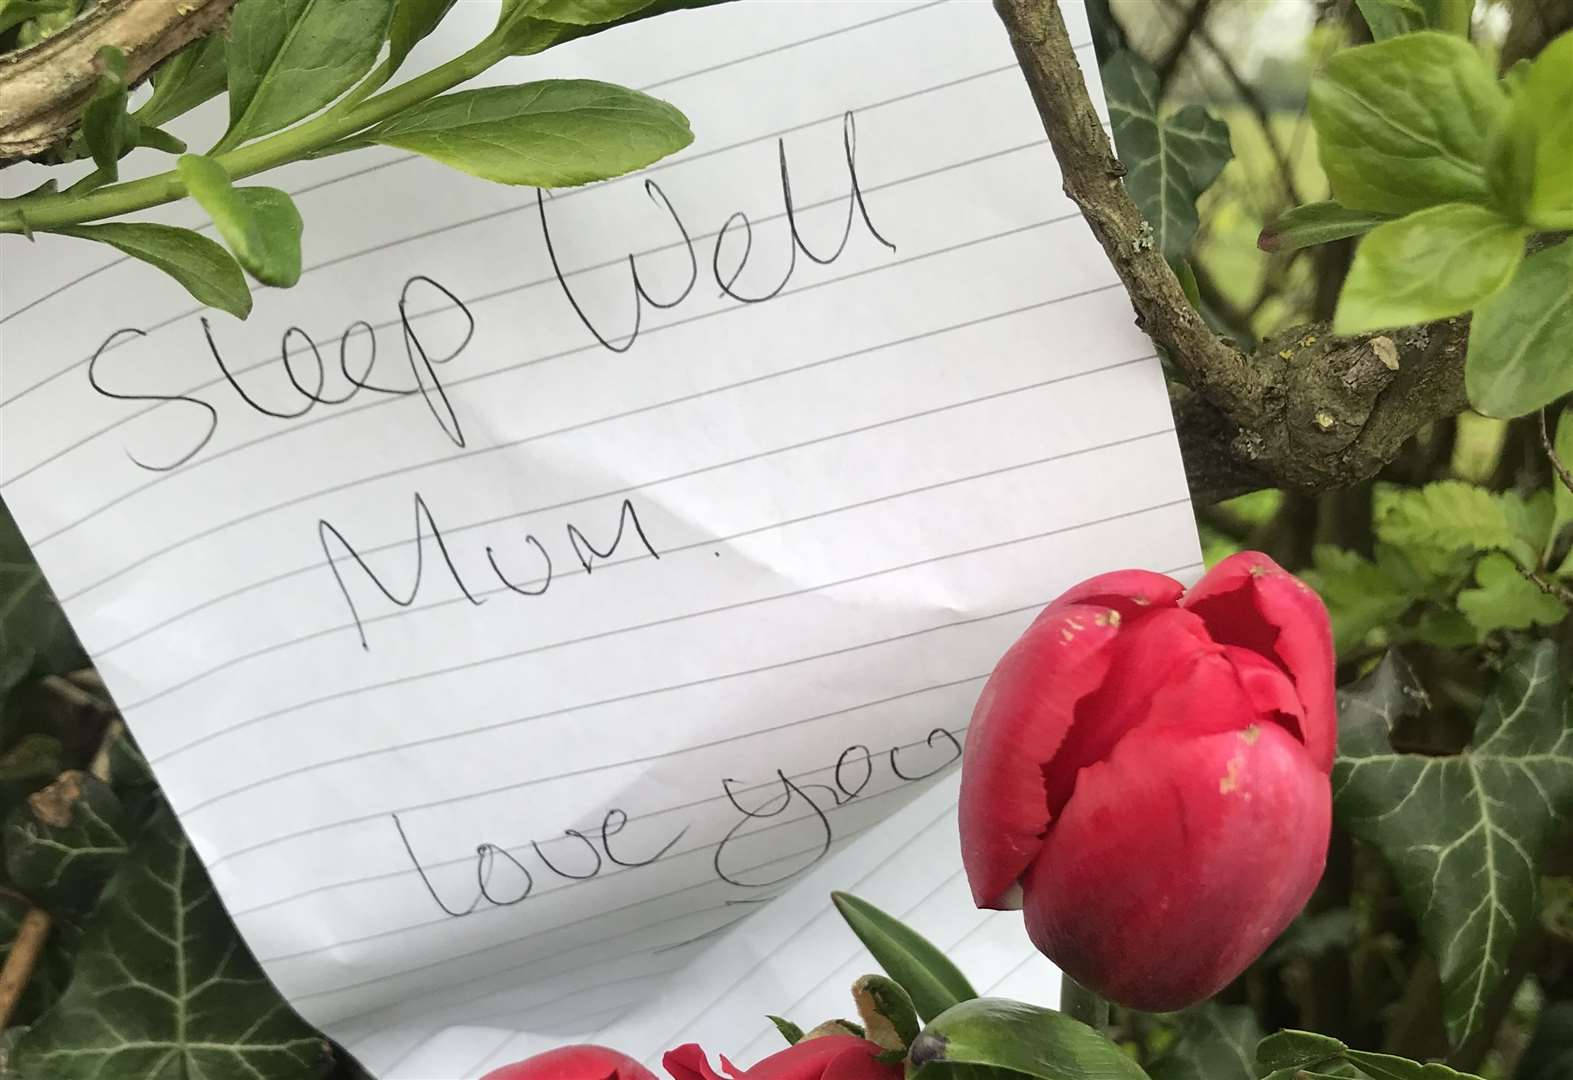 Heartbreaking note left at roadside where woman died